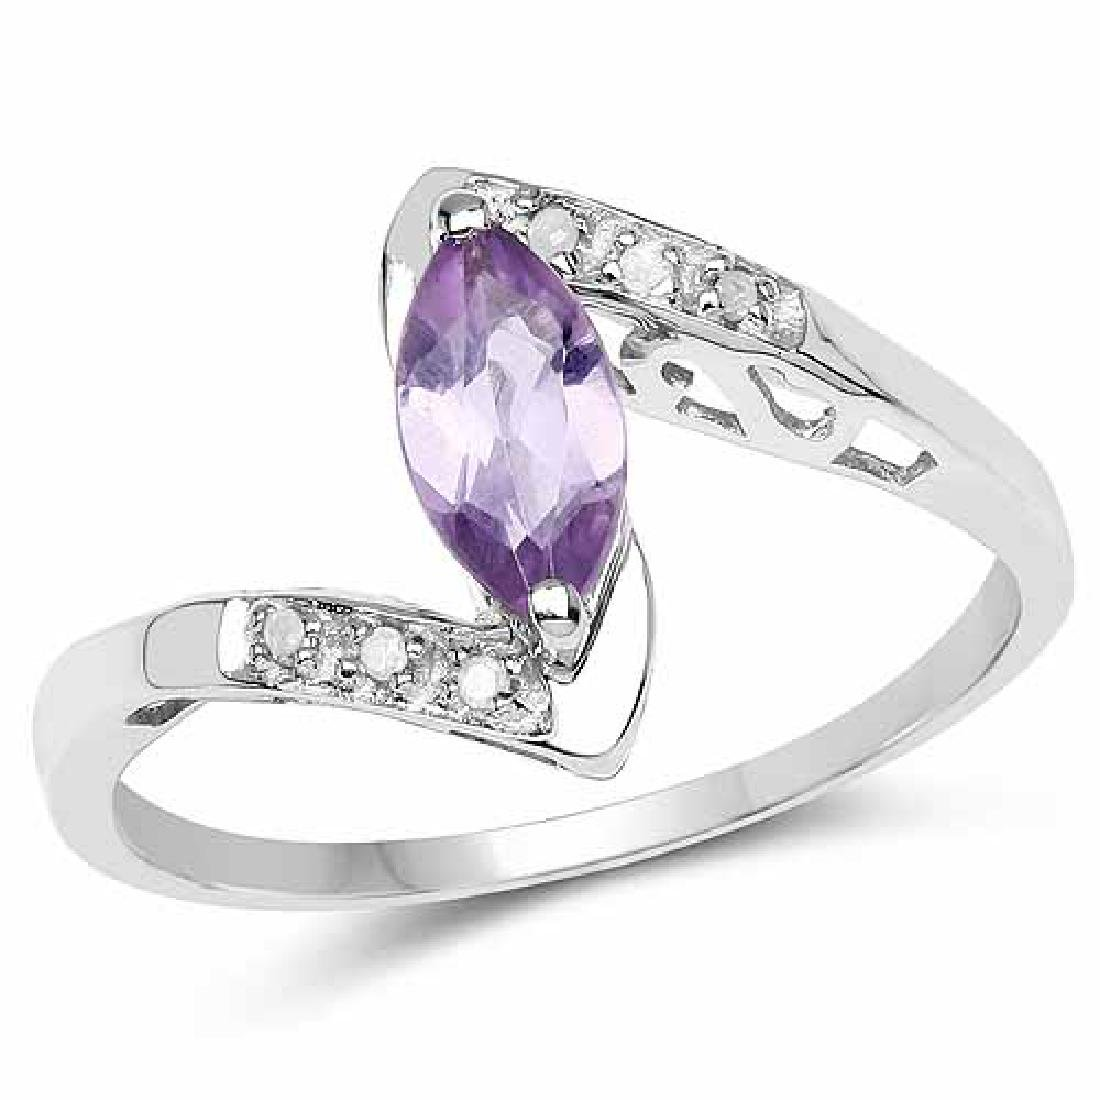 0.56 Carat Genuine Amethyst and White Diamond .925 Ster